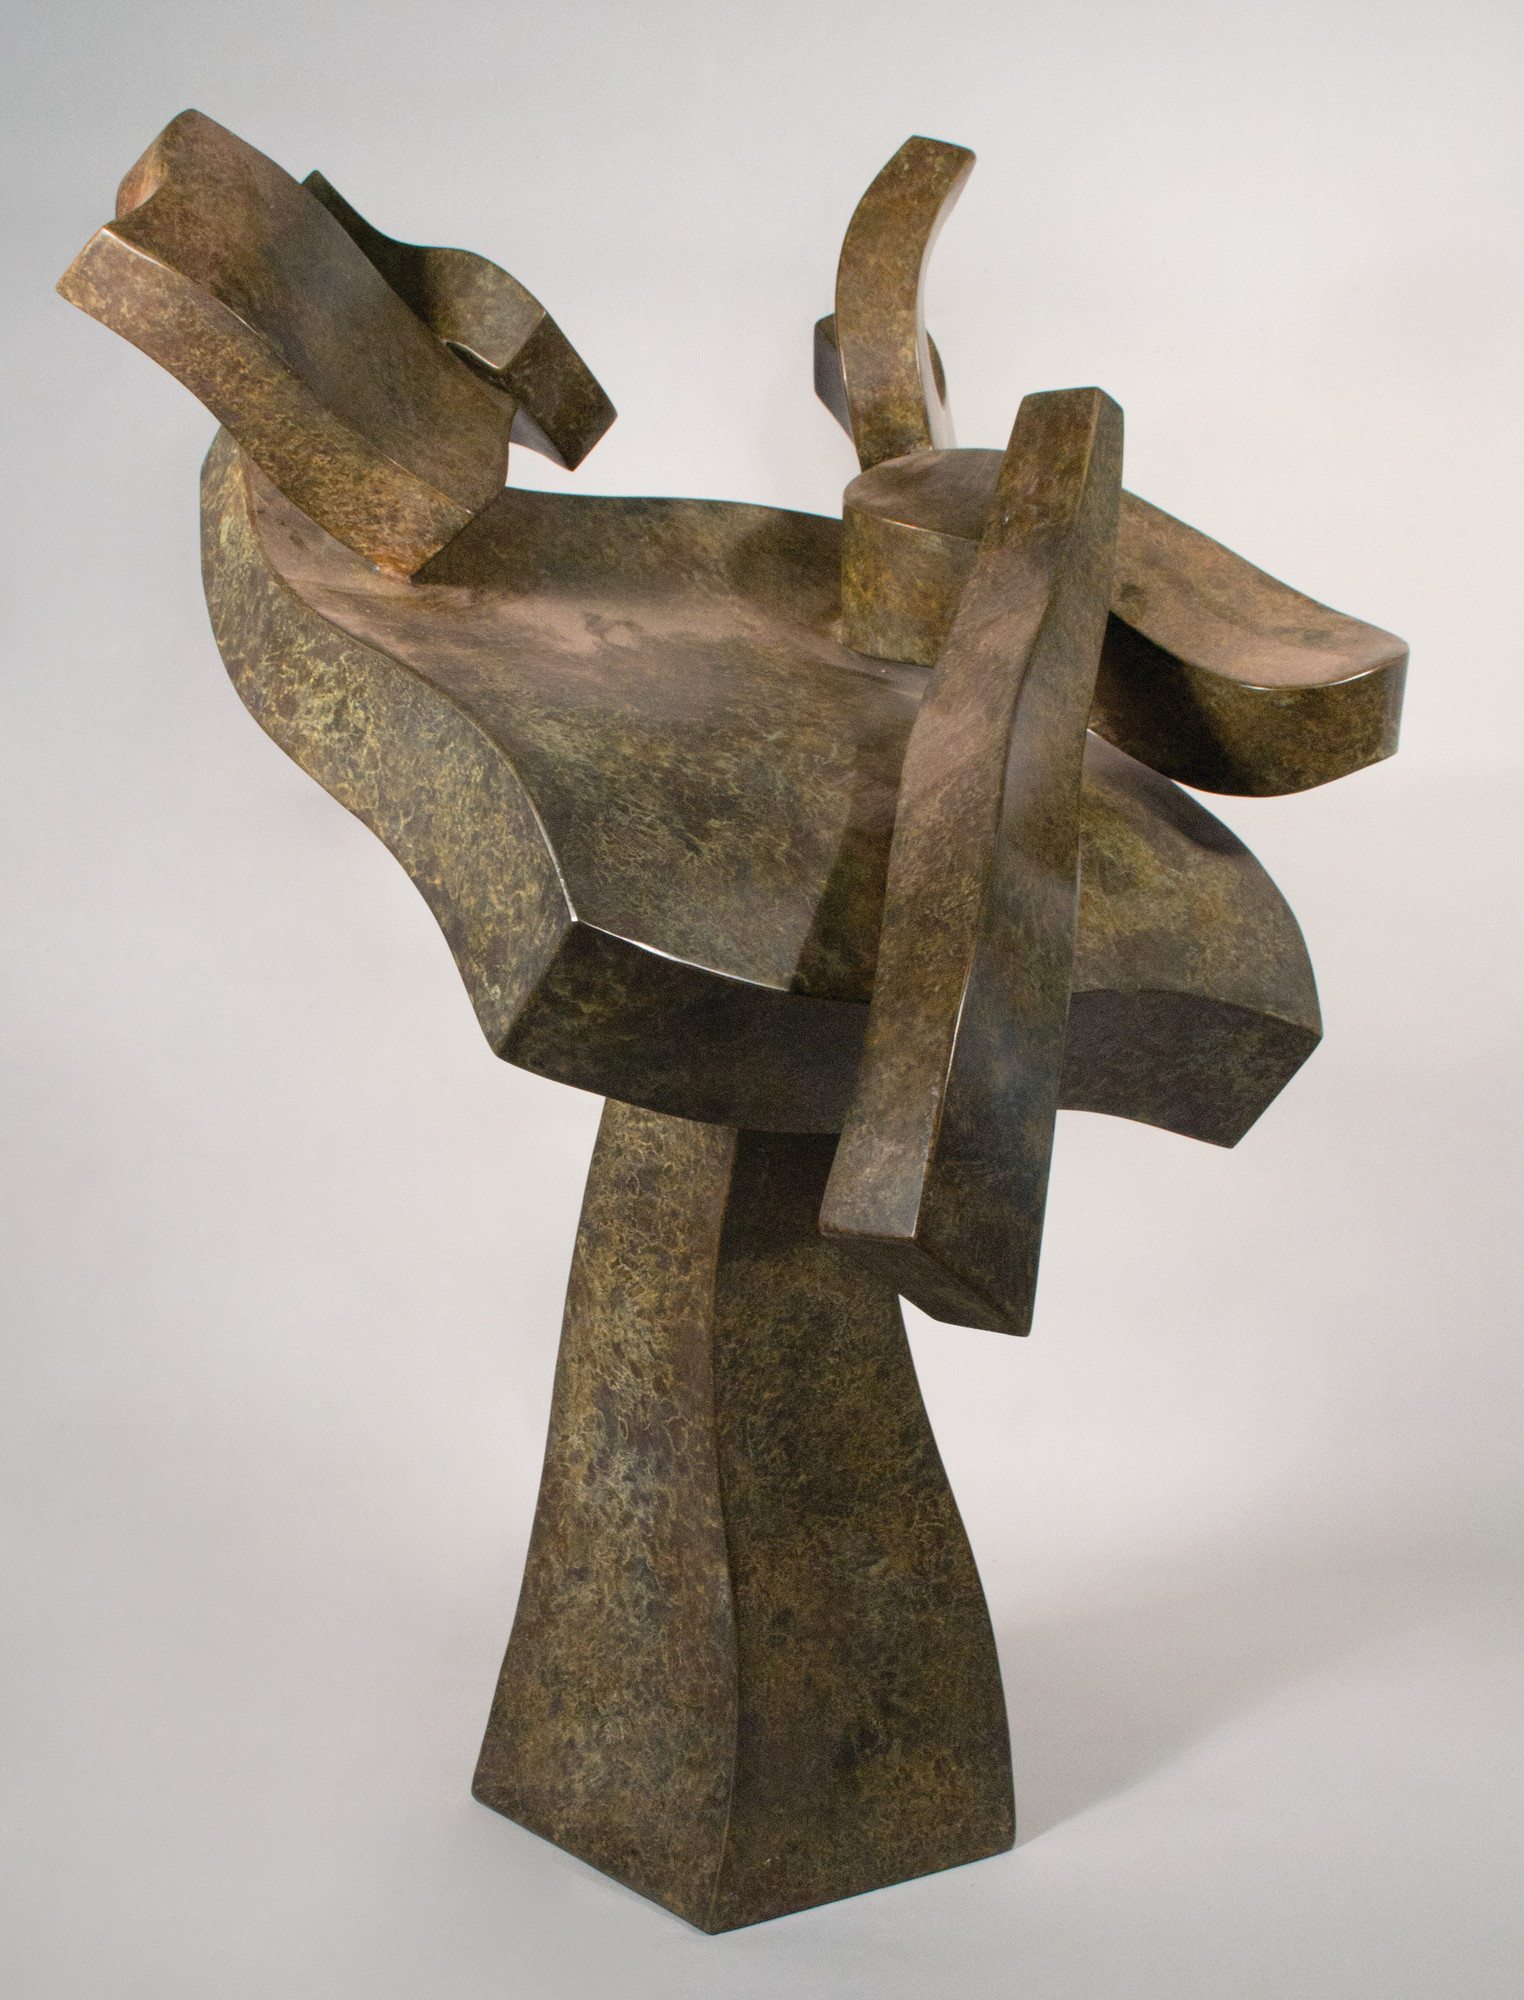 Hans Van de Bovenkamp's sculptures and drawings are on display at Adelphi University's Performing Arts Center Gallery.